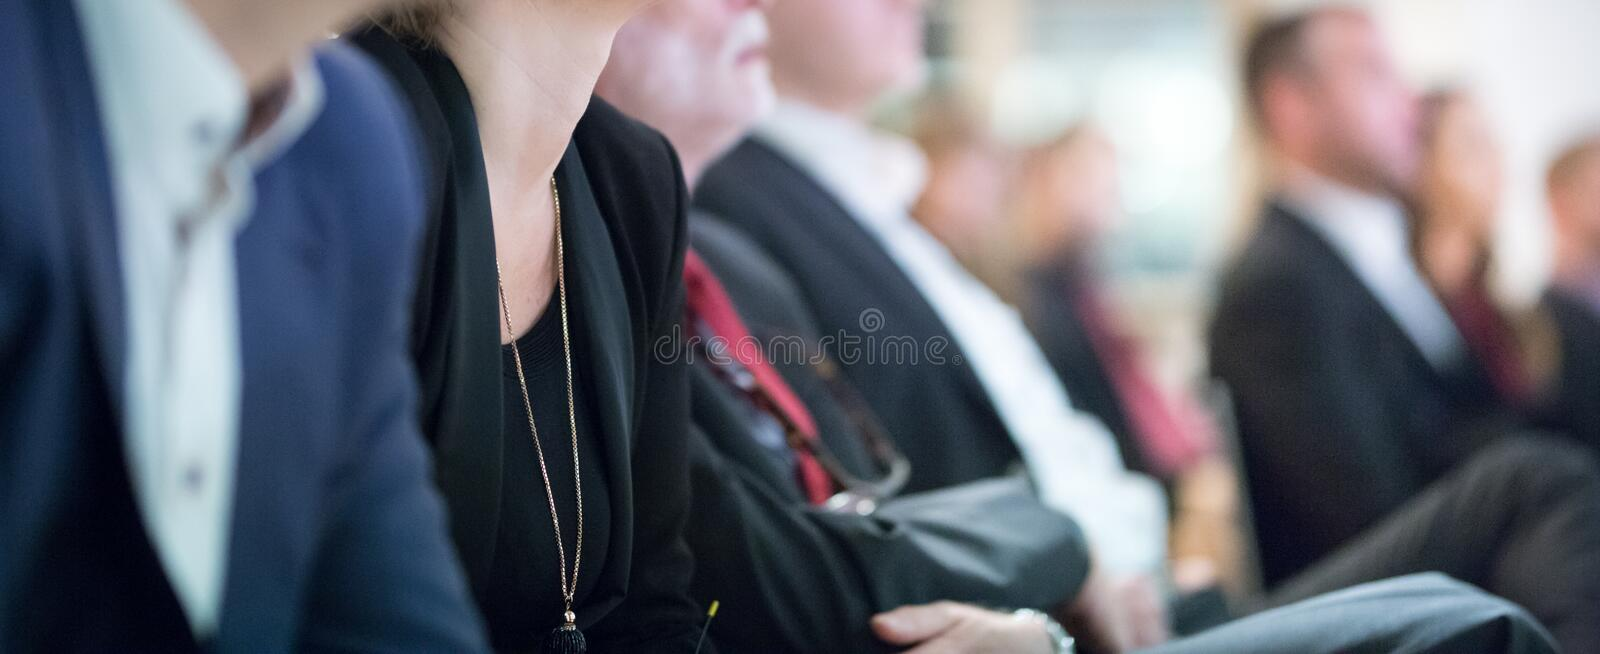 Row of business people sitting at seminar. royalty free stock photos